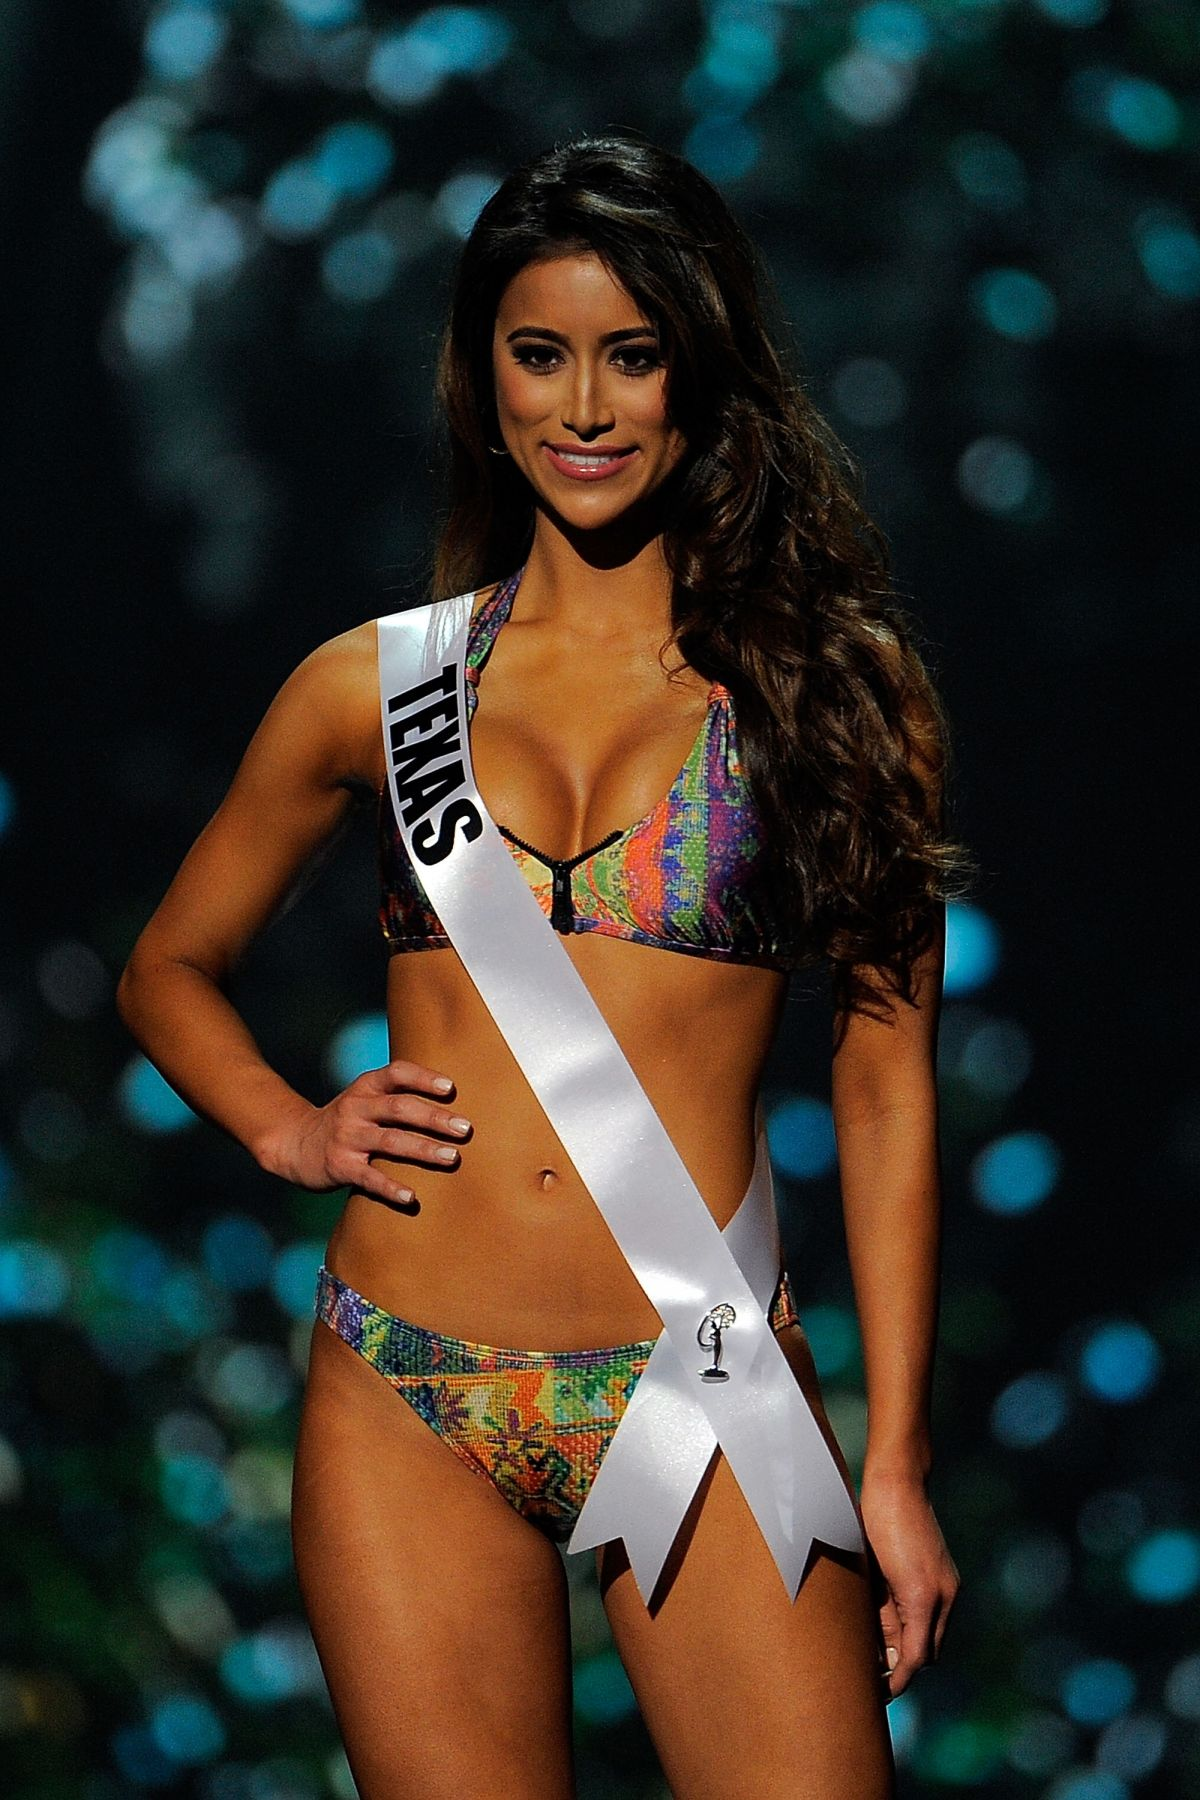 LAUREN GUZMAN at Miss USA 2014 Preliminary Competition